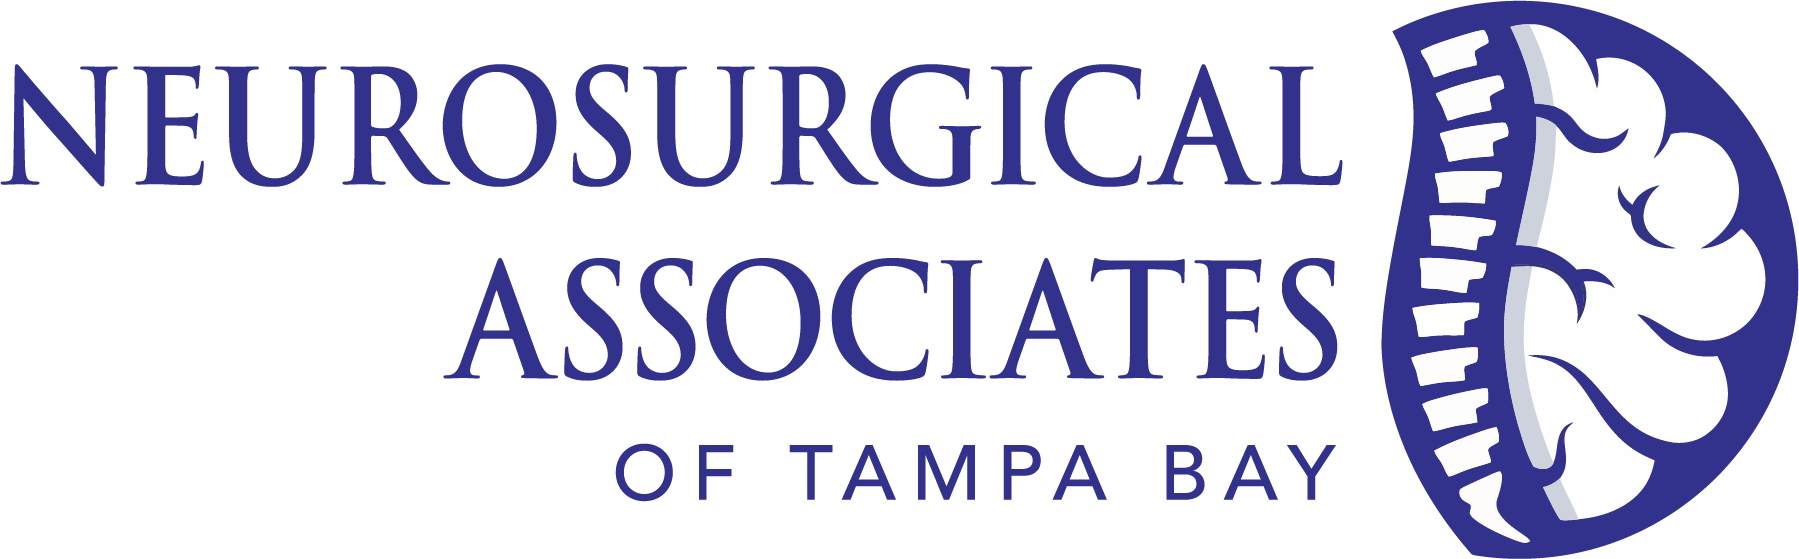 Neurosurgical Associates of Tampa Bay: Neurosurgeons: St. Petersburg, FL